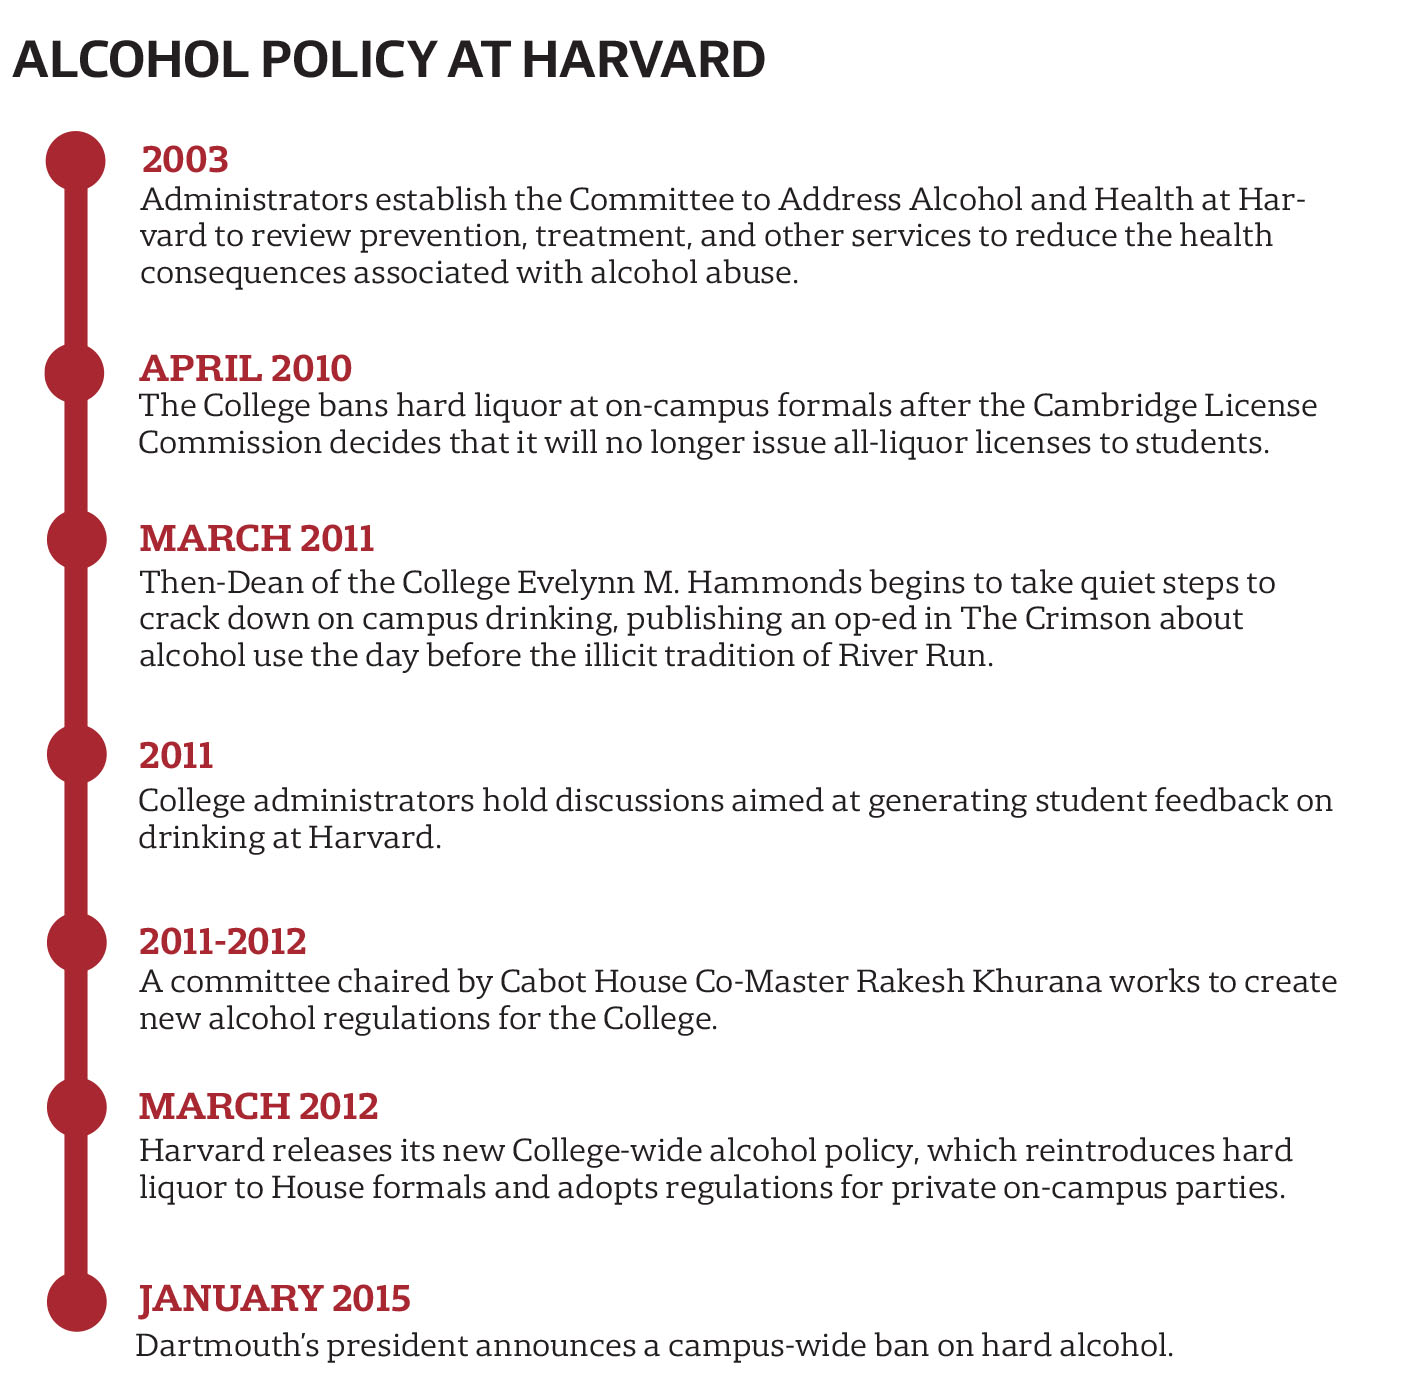 Harvard's Alcohol Policy